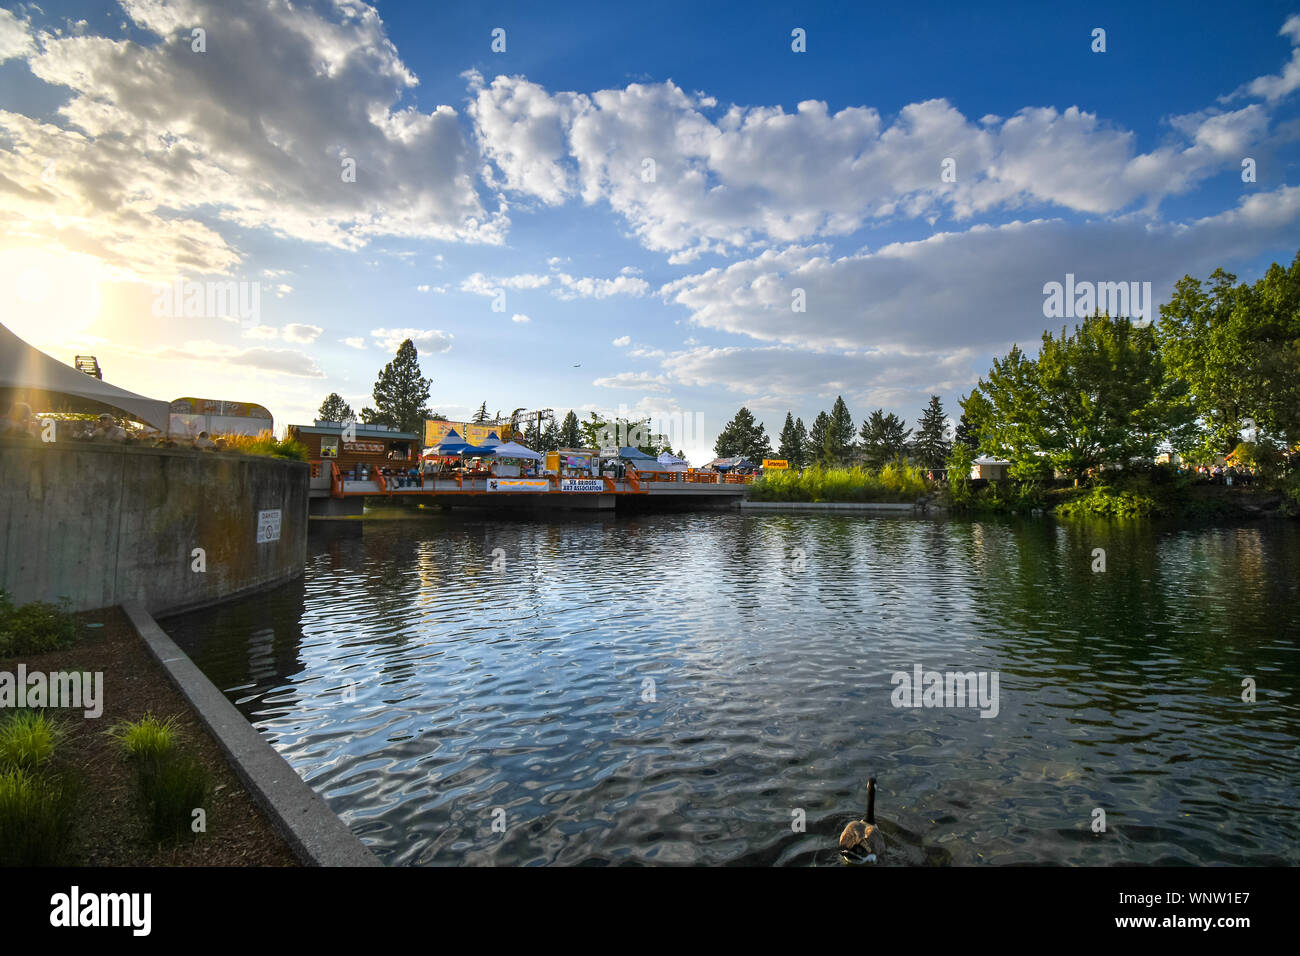 The sun begins to set at dusk over the tents, booths and vendors at the annual Pig out in the Park at Riverfront Park in Spokane, Washington, USA Stock Photo